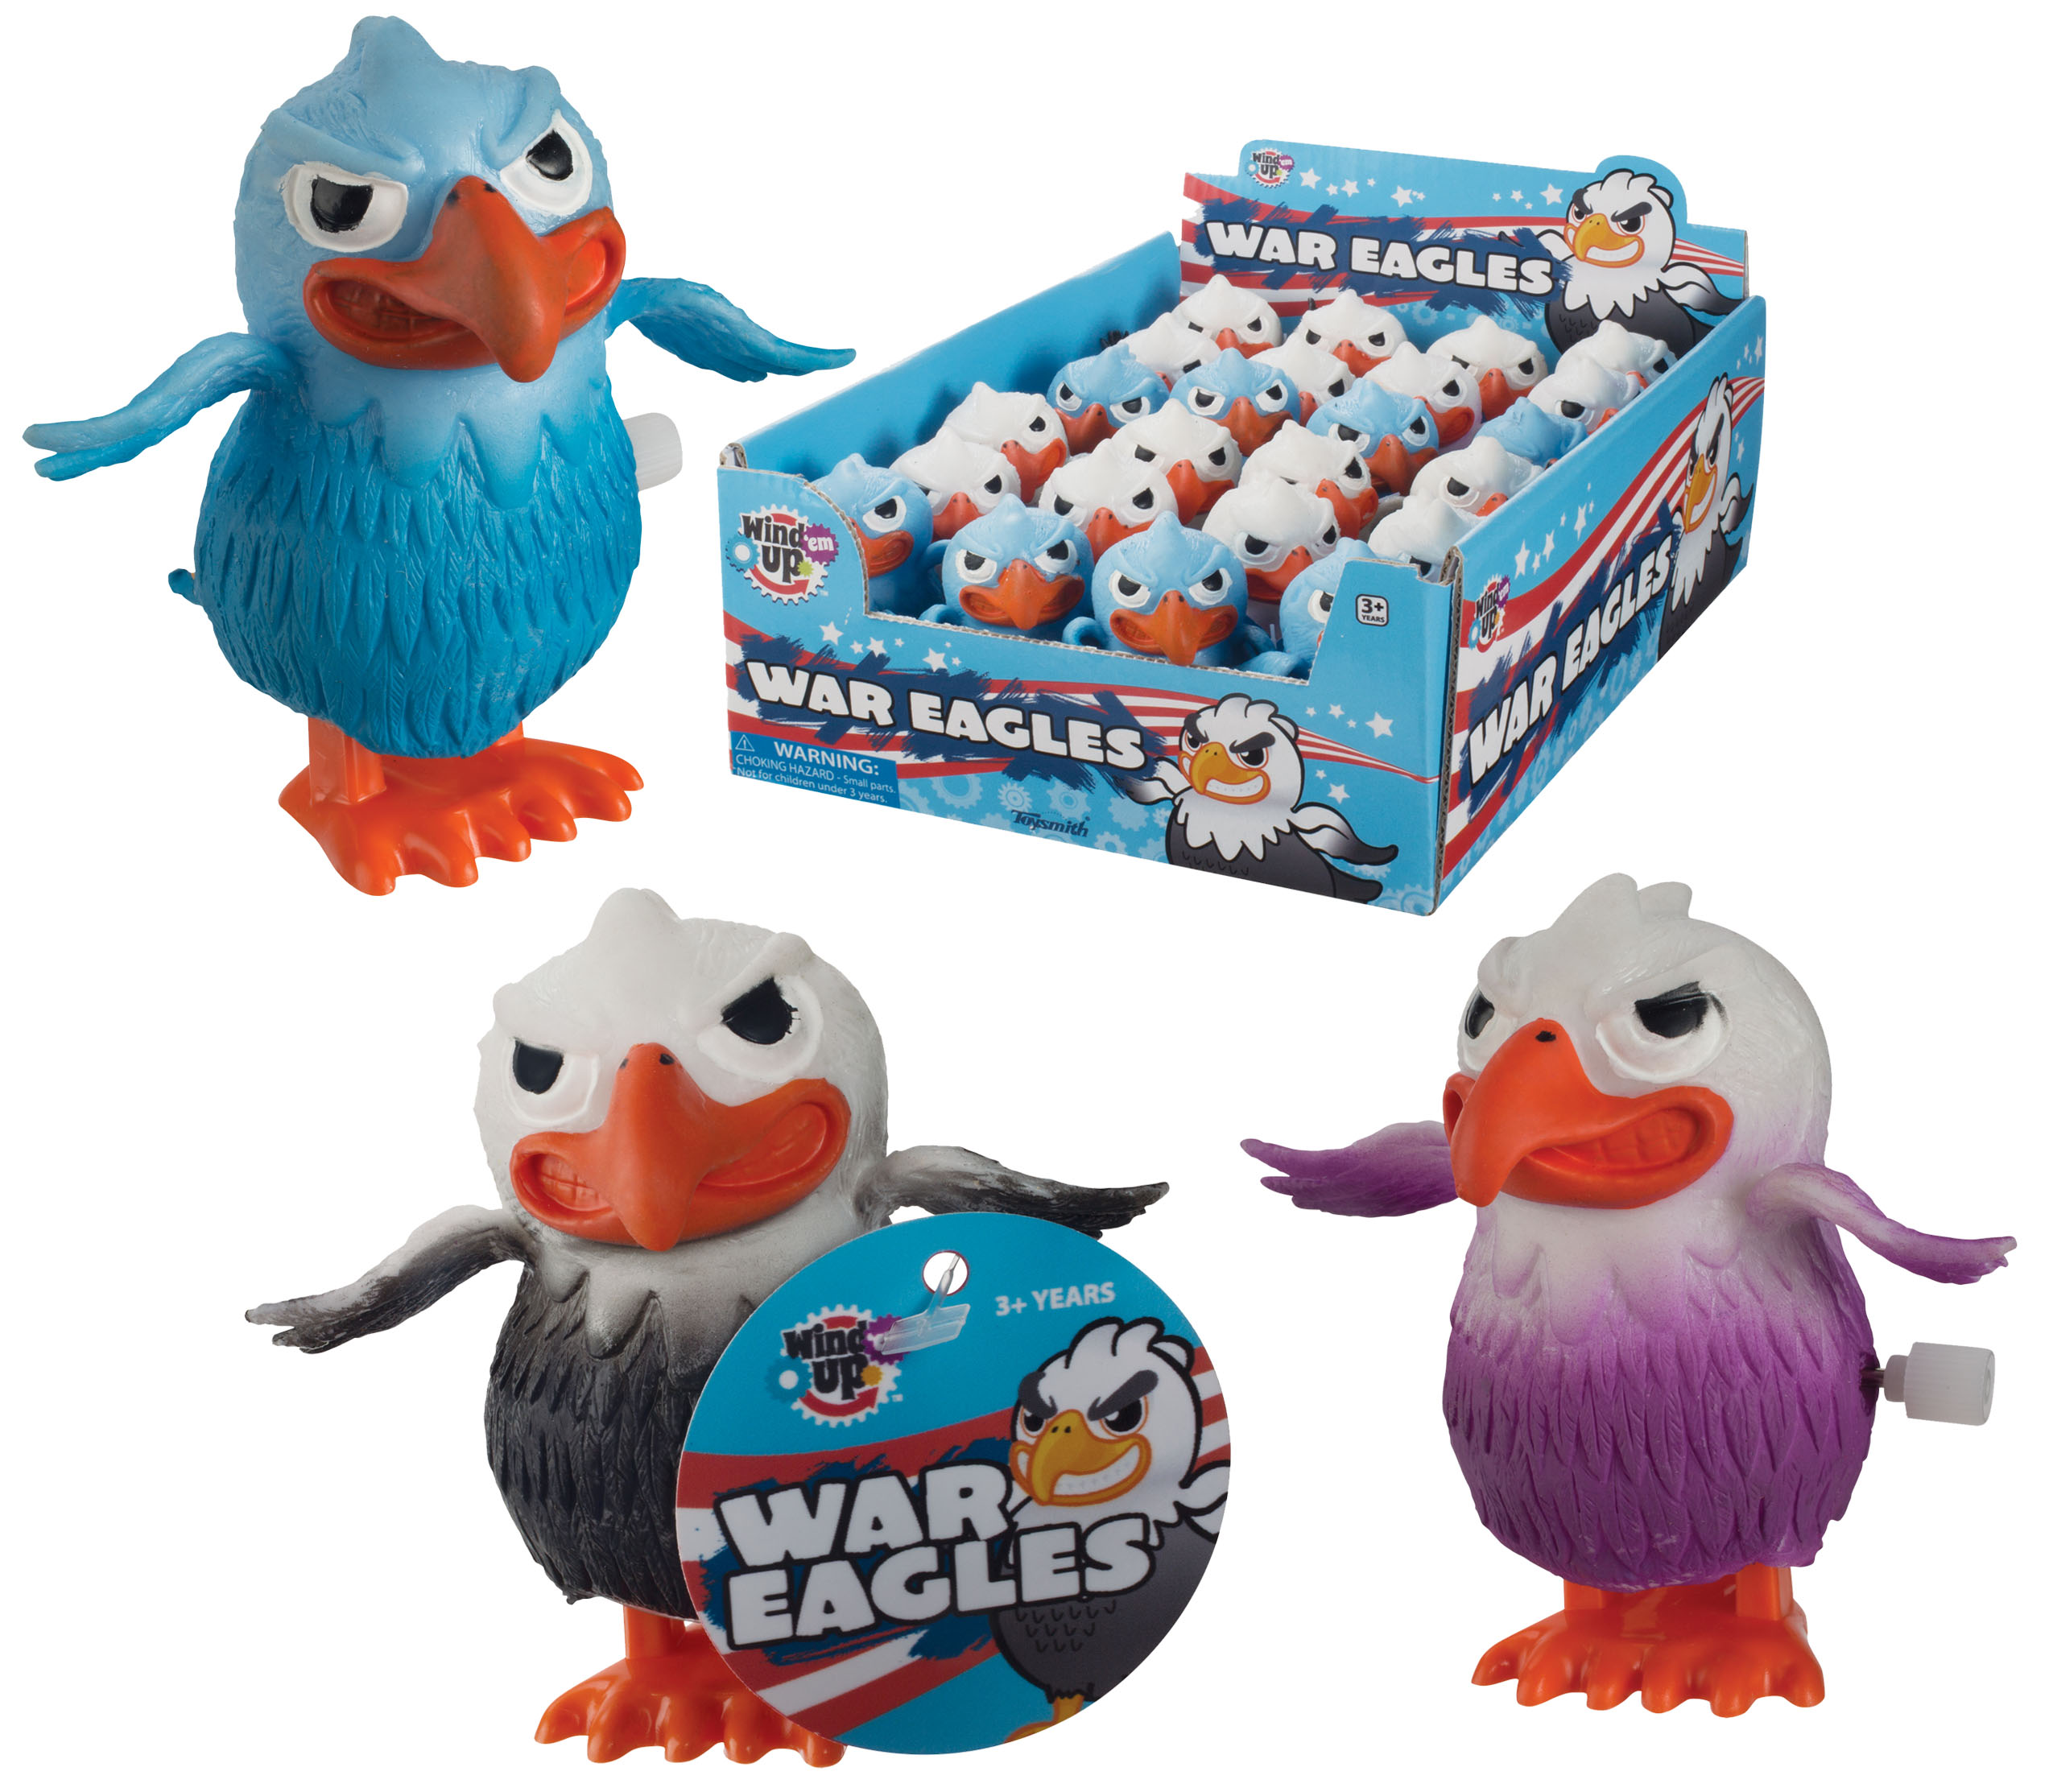 War Eagles Wind-ups